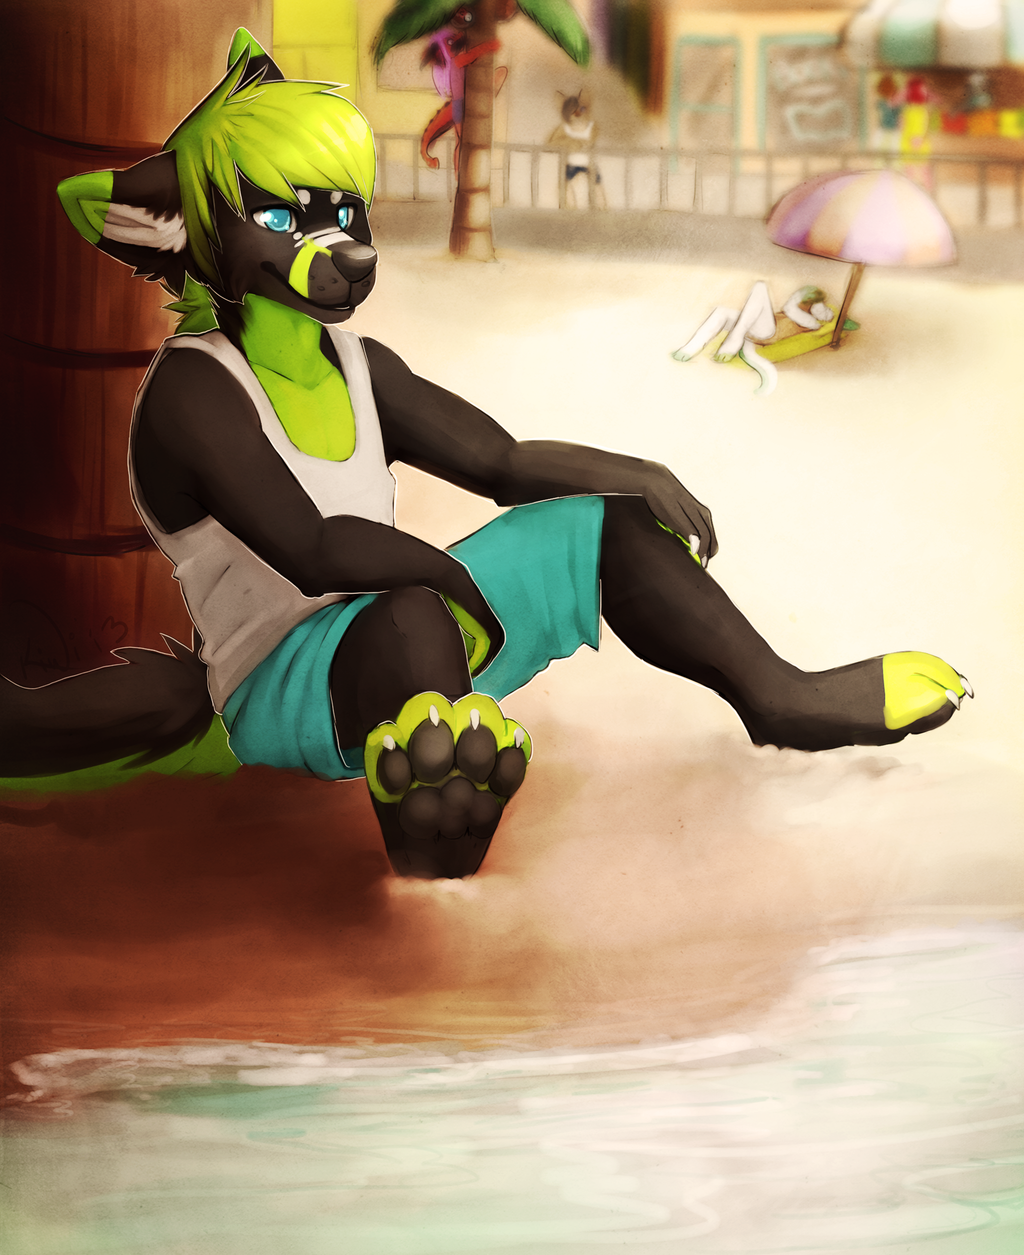 Most recent image: beach party